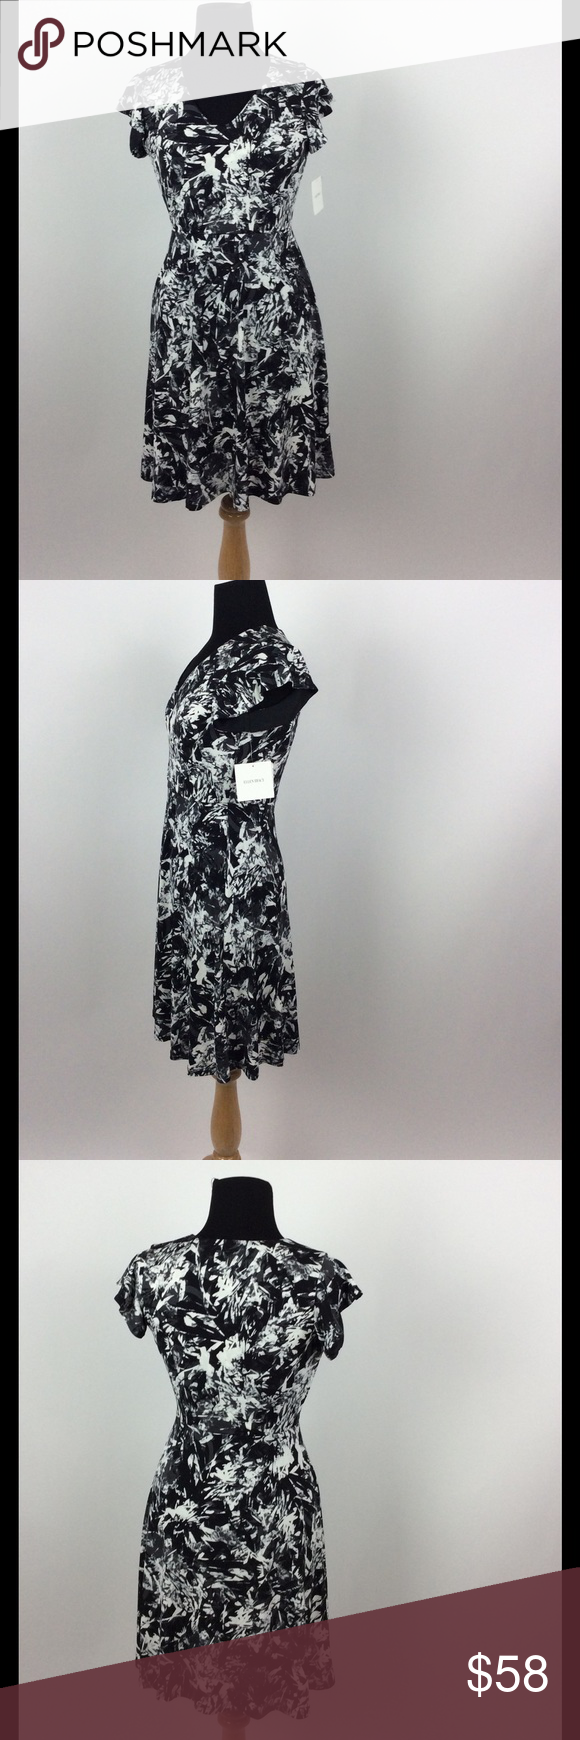 Ellen tracy nwt see size chart for more measurements dresses midi also pinterest rh